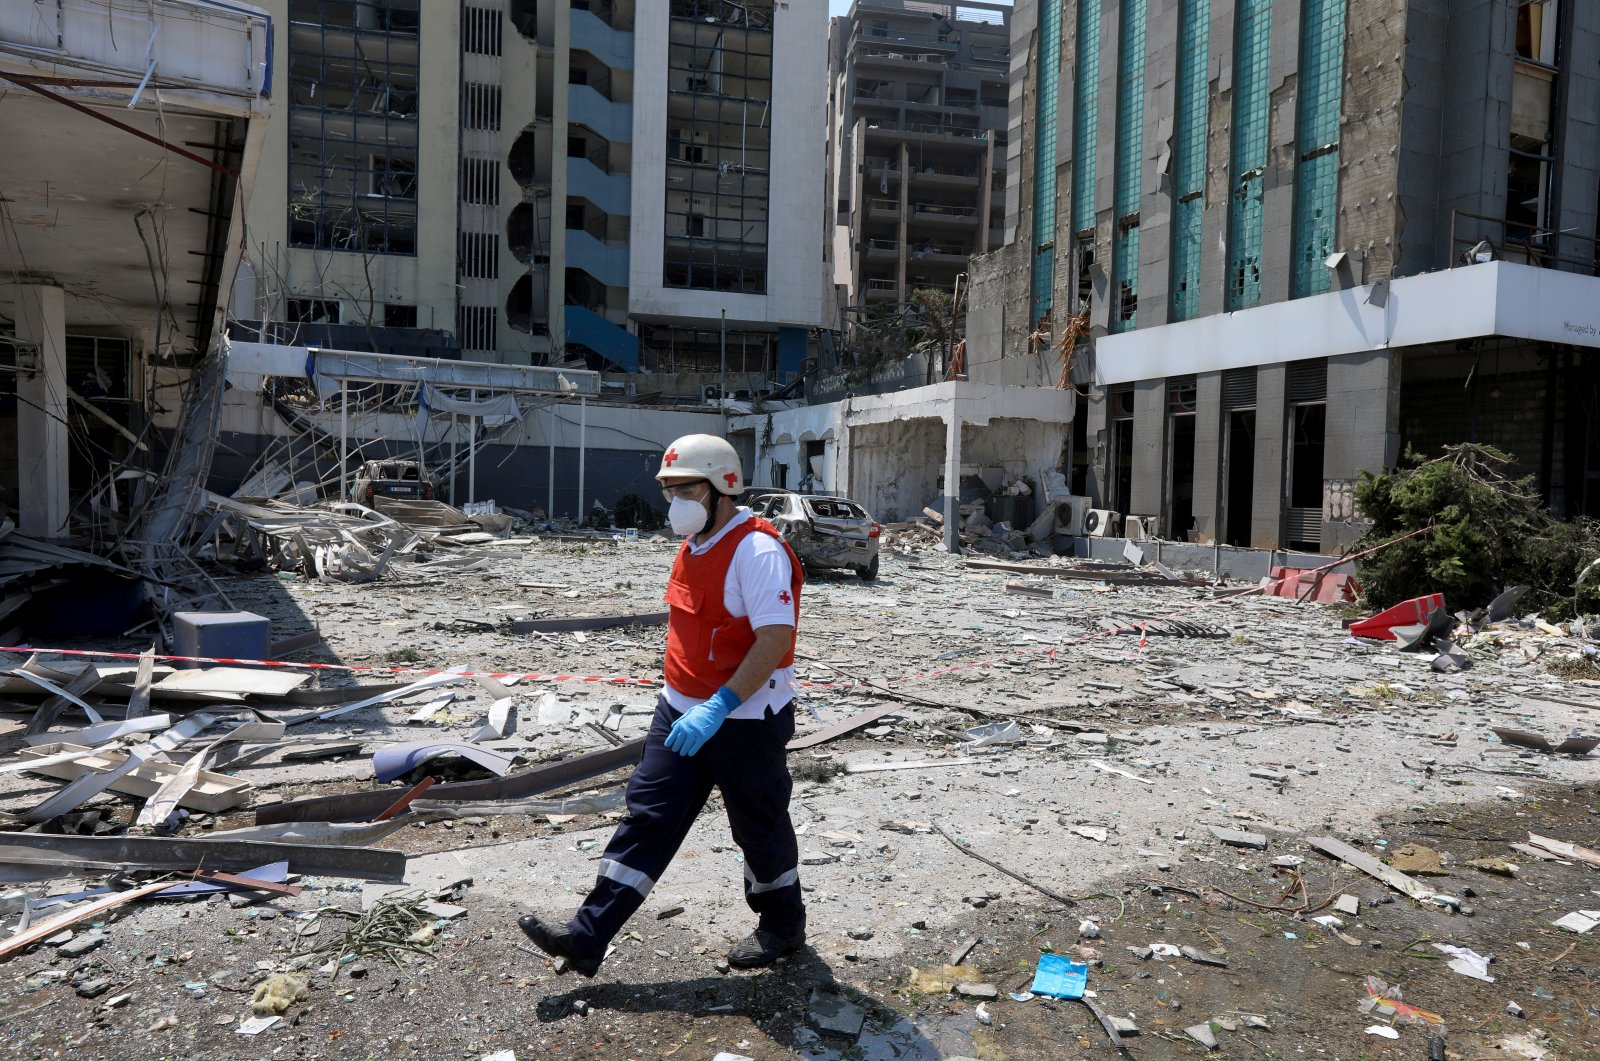 A Lebanese Red Cross member walks among the debris from damaged buildings following Tuesday's blast in Beirut's port area, Lebanon, Aug. 5, 2020. (Reuters Photo)